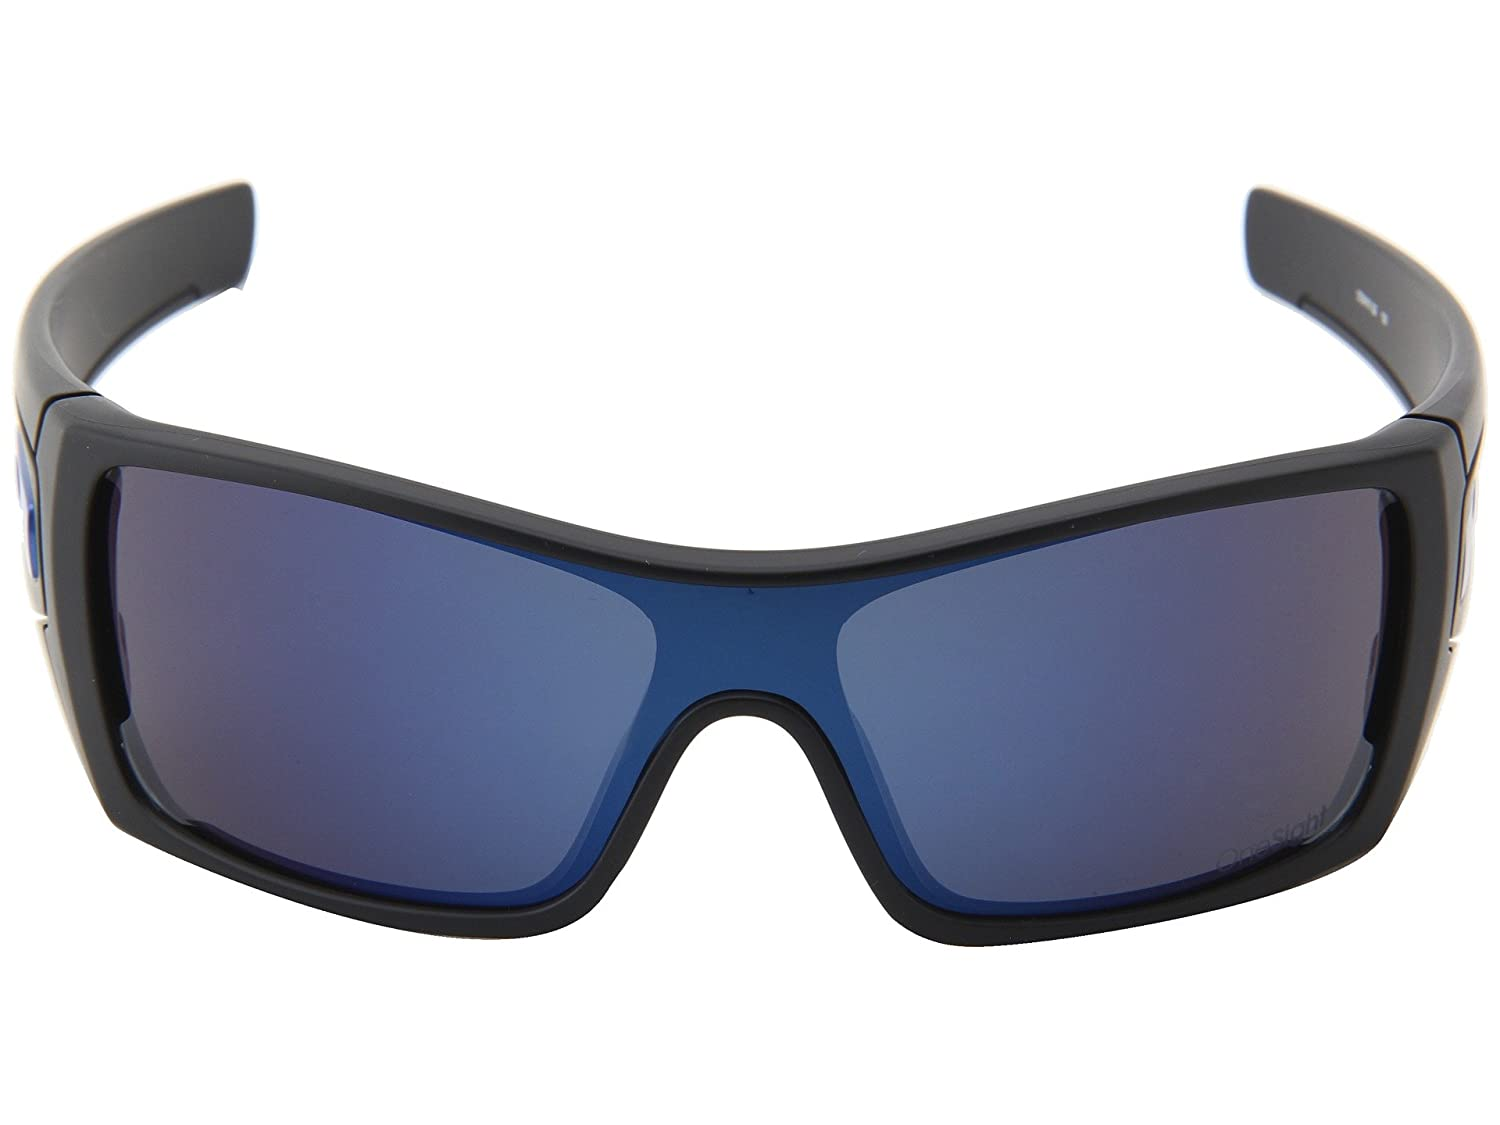 fe3072d9e4 ... w ruby iridium oo9174 06 89dd5 65d91  where can i buy amazon oakley  mens onesight batwolf limited edition sunglasses matte black ice iridium